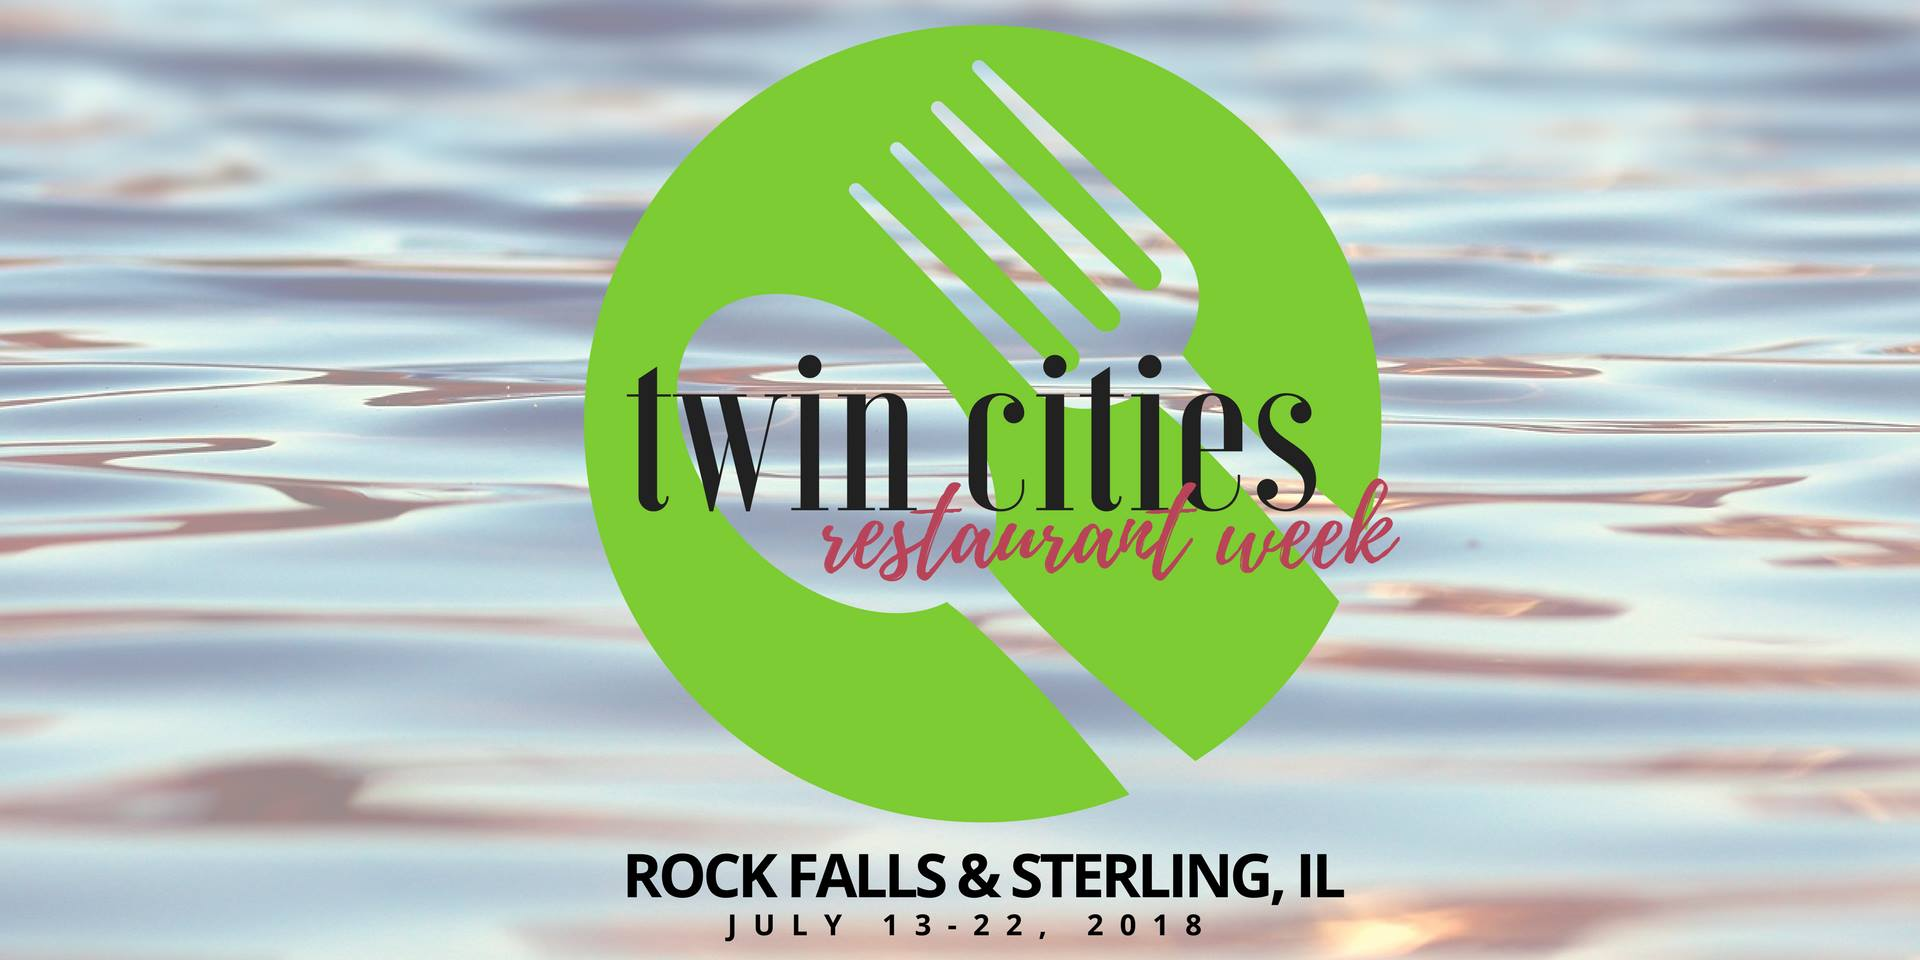 Twin Cities restaurant week 7.22.18